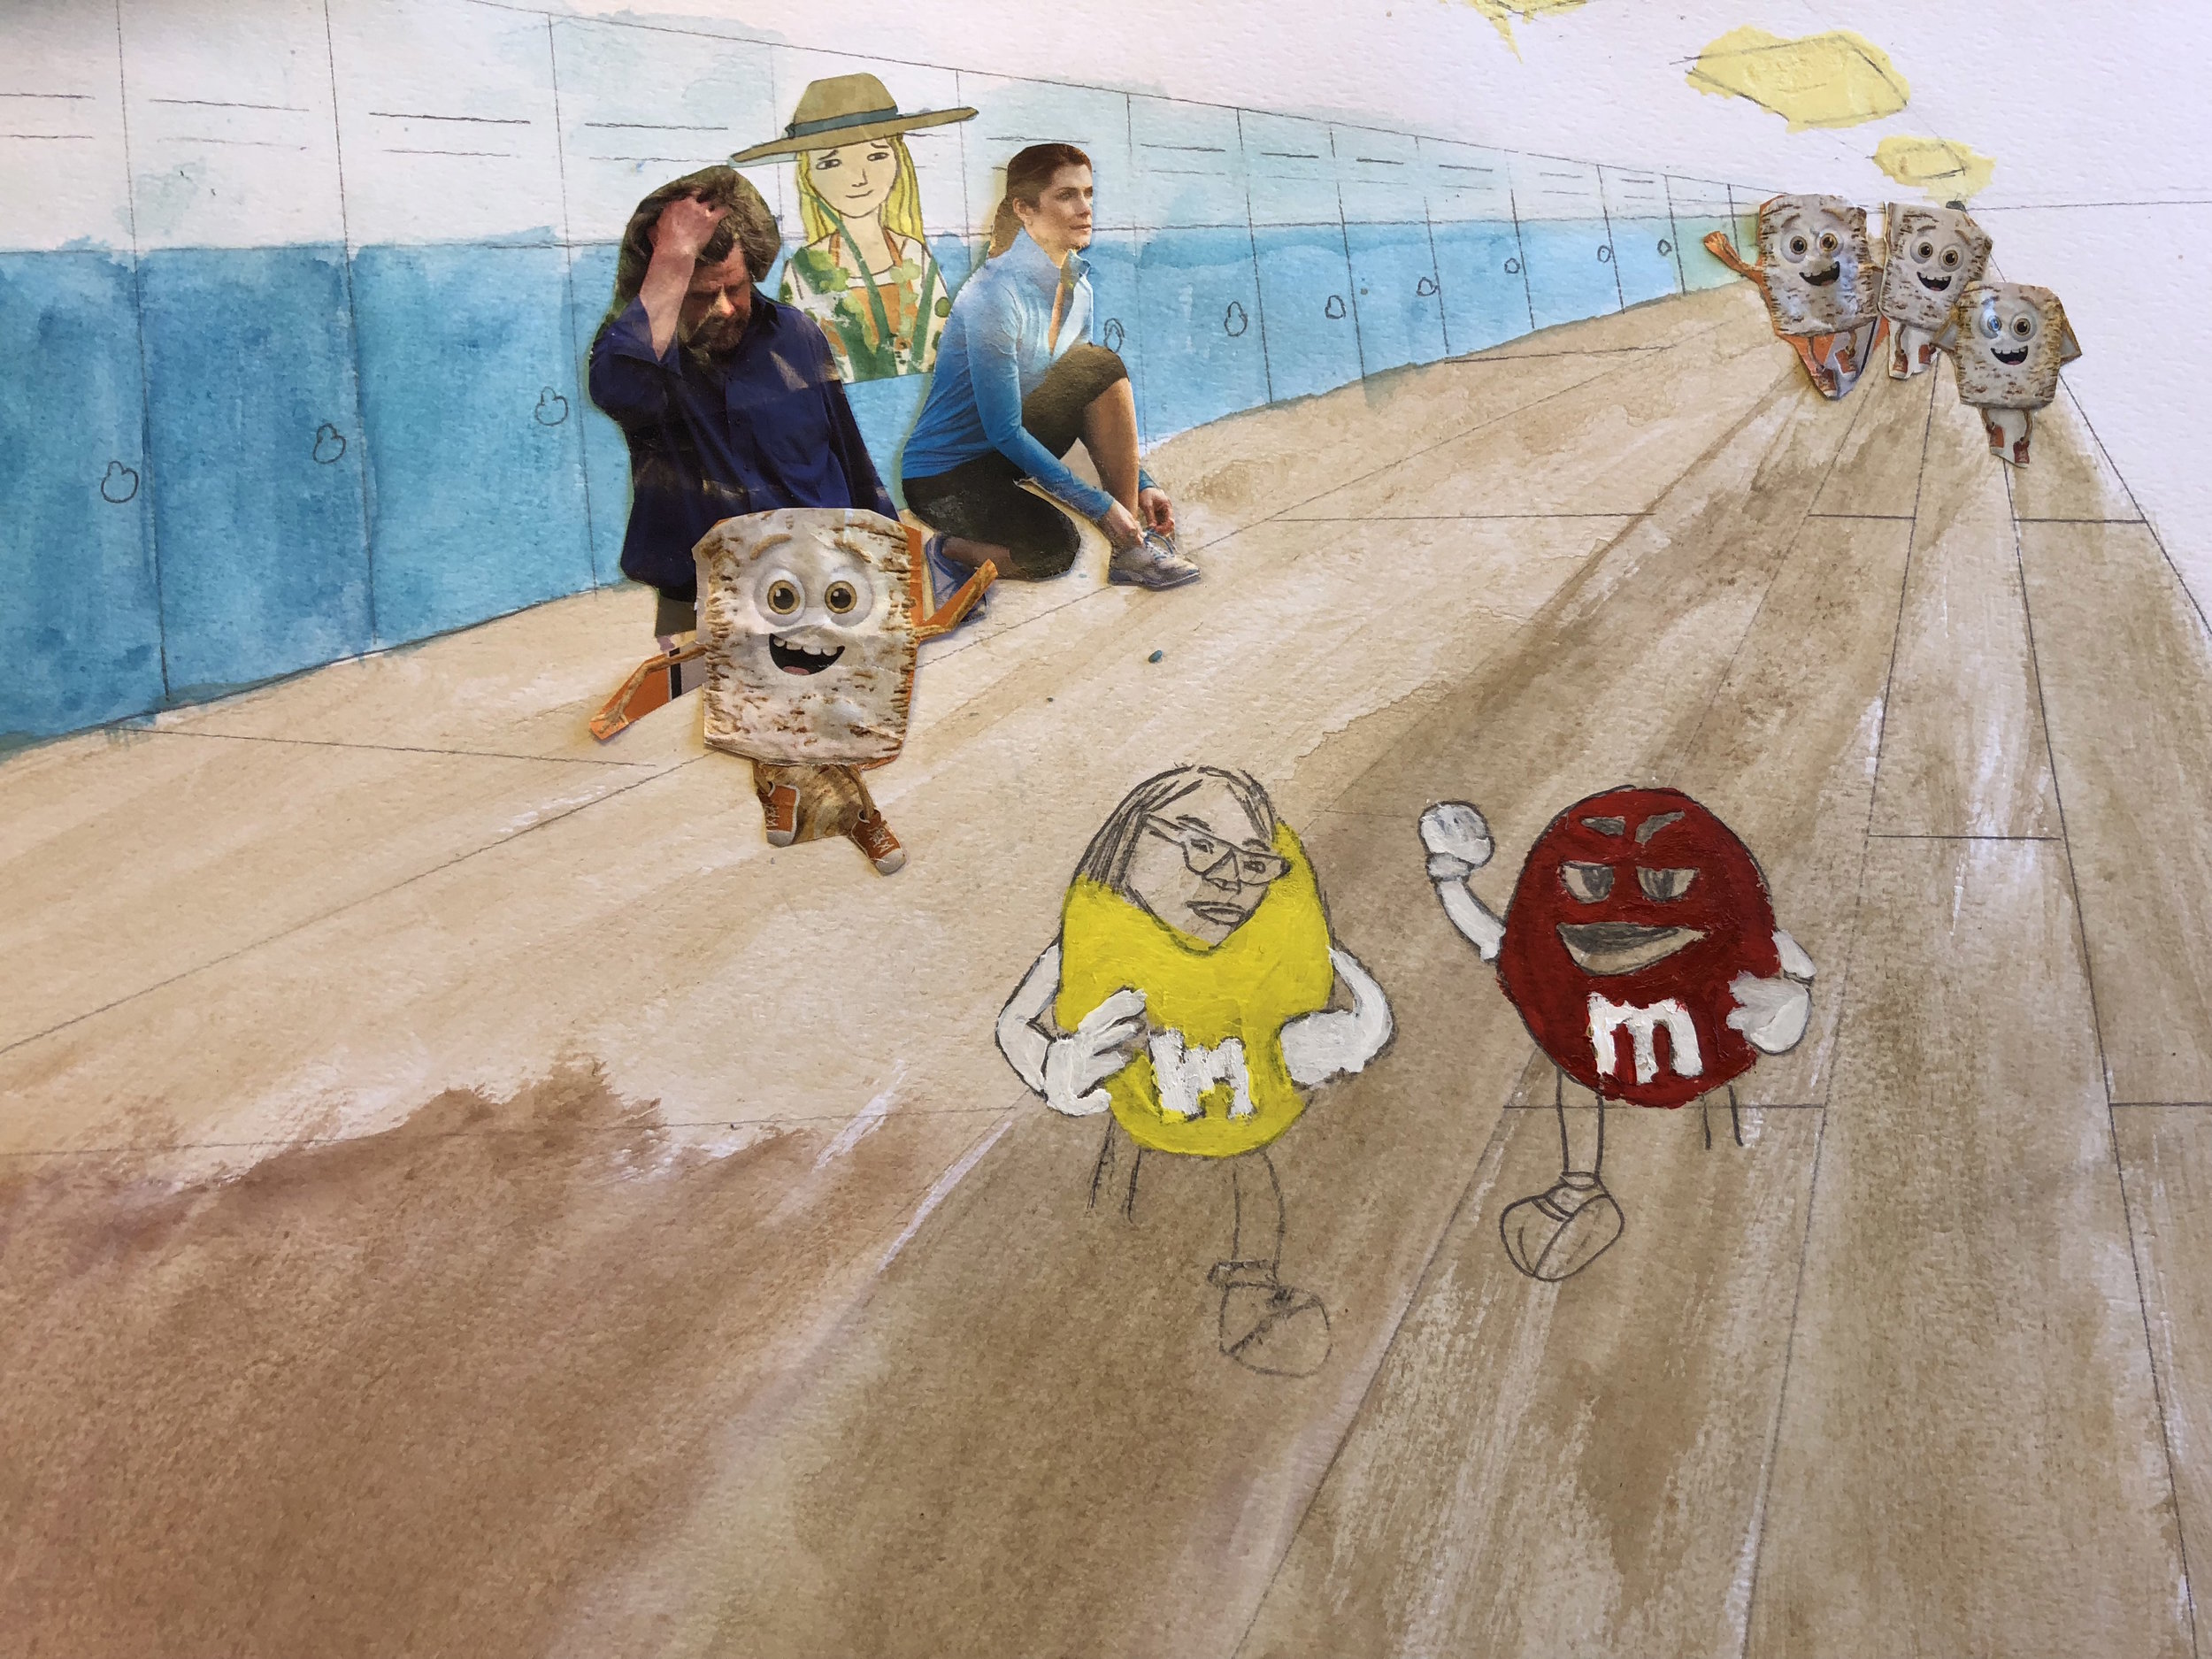 Student artwork featuring figures in a hallway with lockers and M&M's